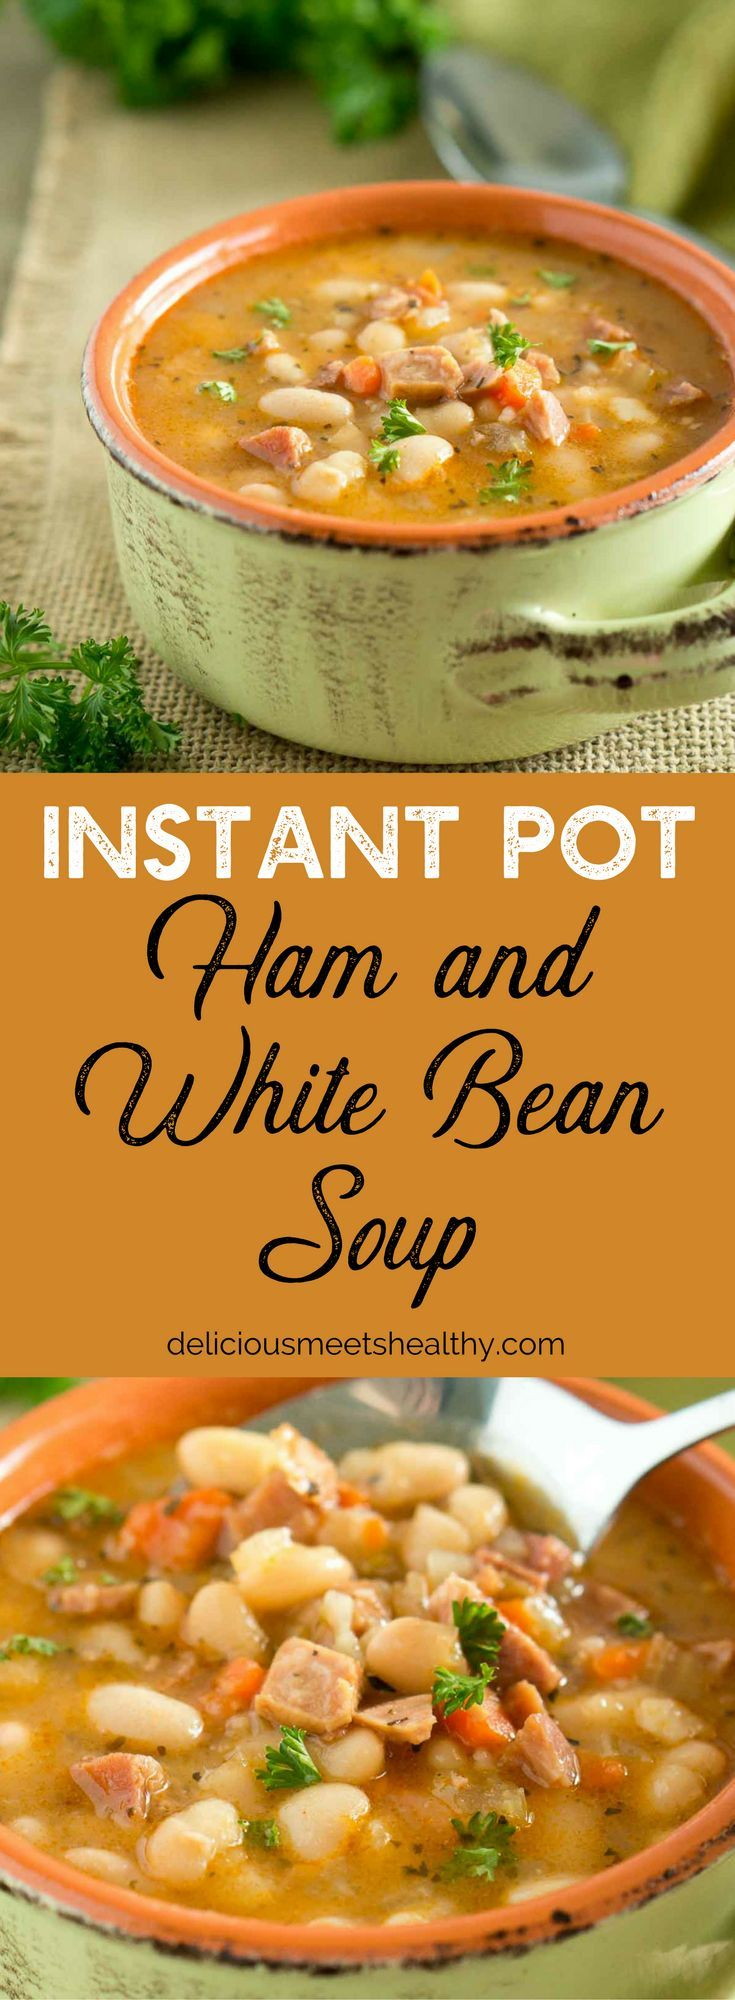 Hearty, starchy and filling, this rustic Ham and White Bean Soup is the epitome of comfort food.